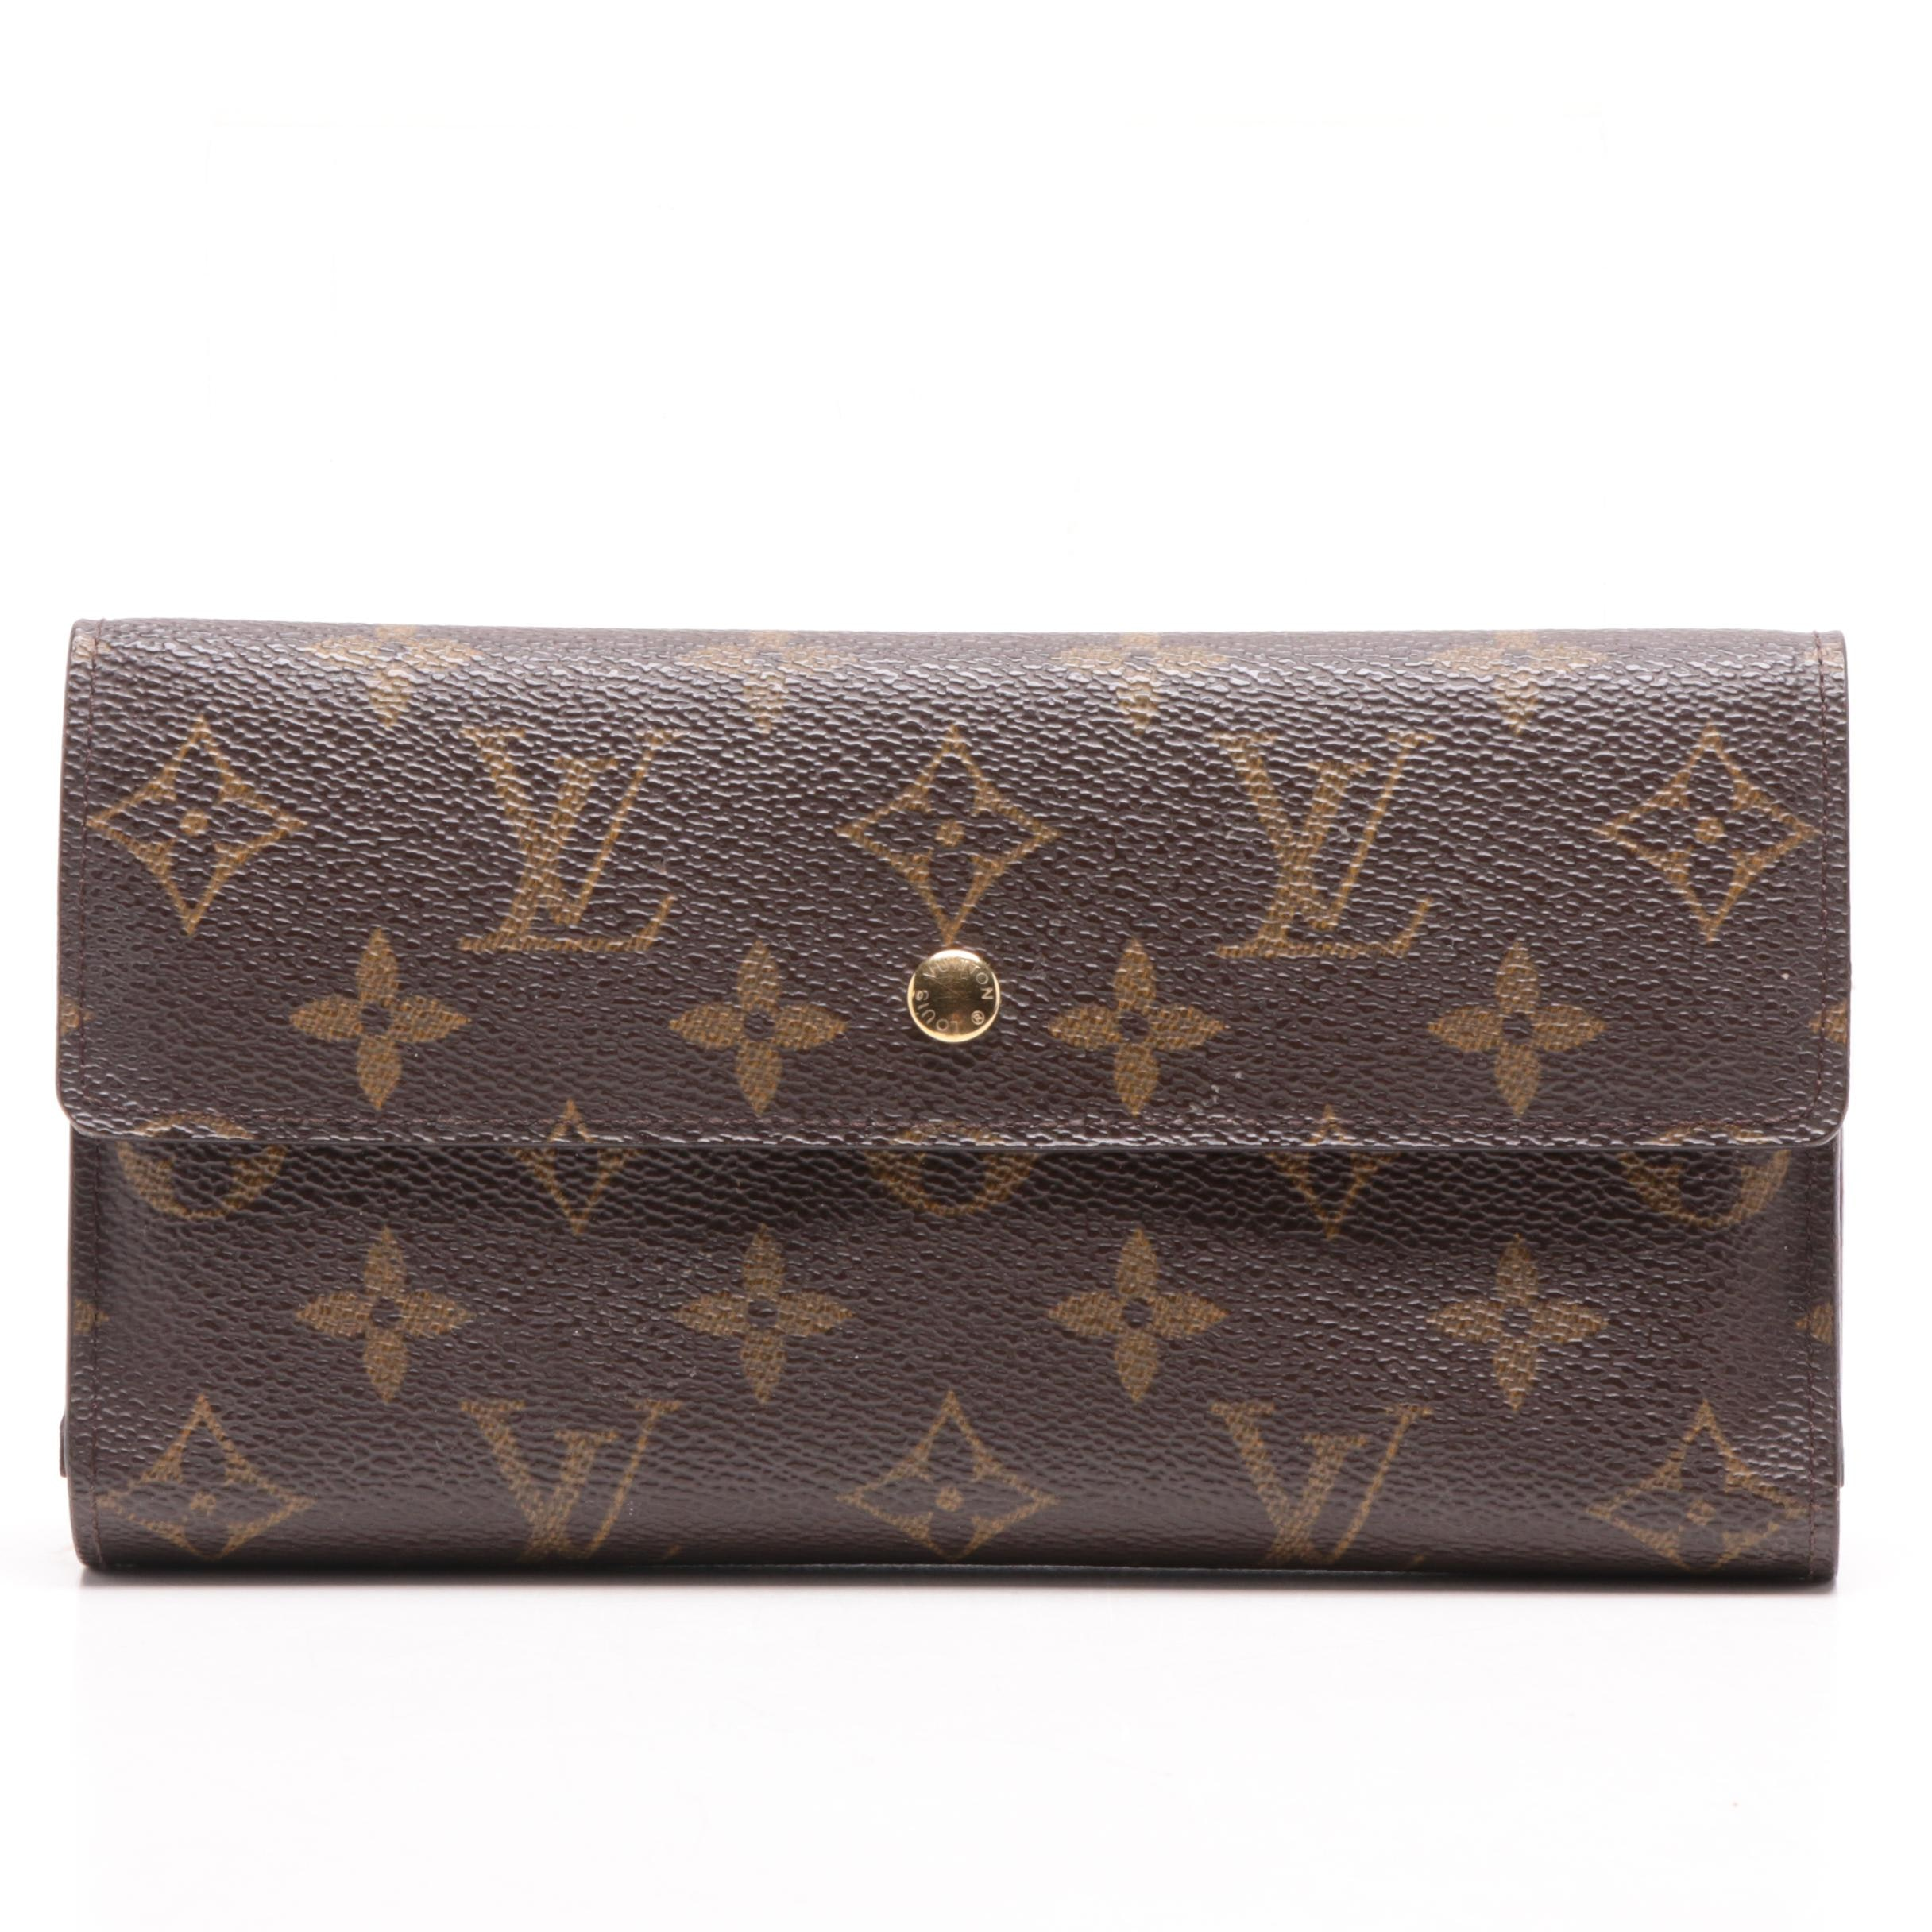 Louis Vuitton Paris Monogram Canvas Porte Tresor Wallet